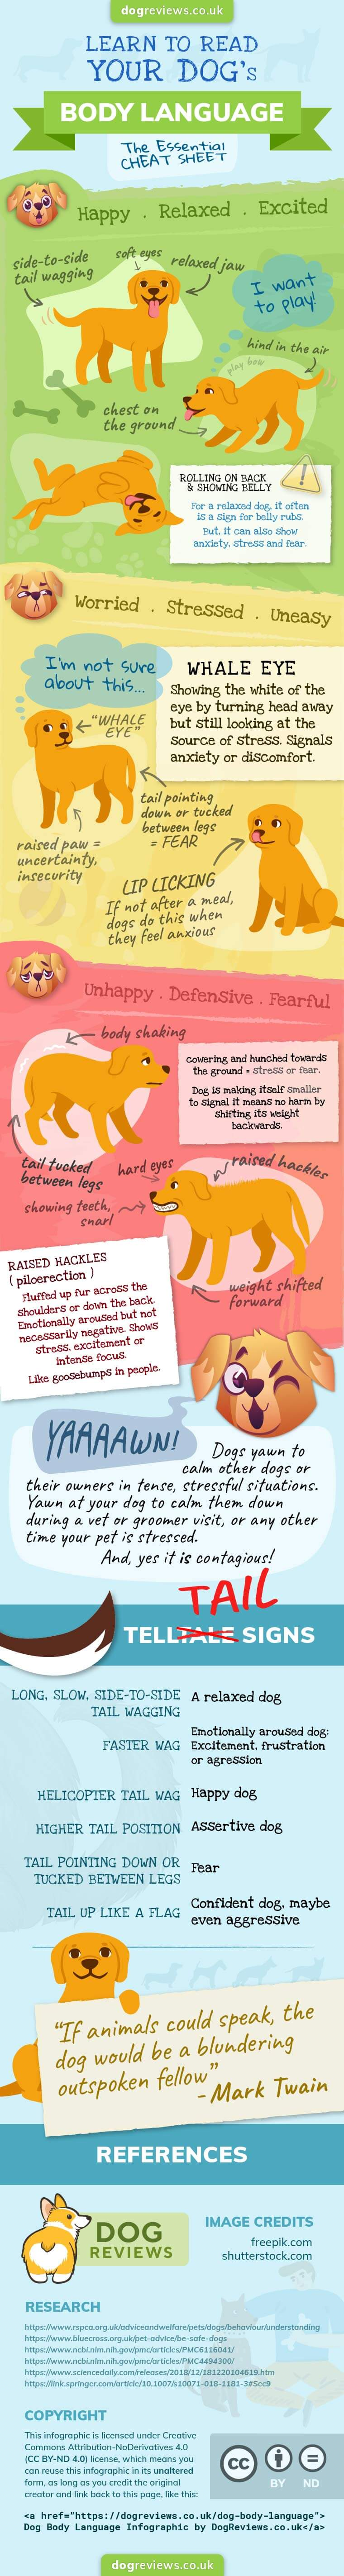 dog body language infographic